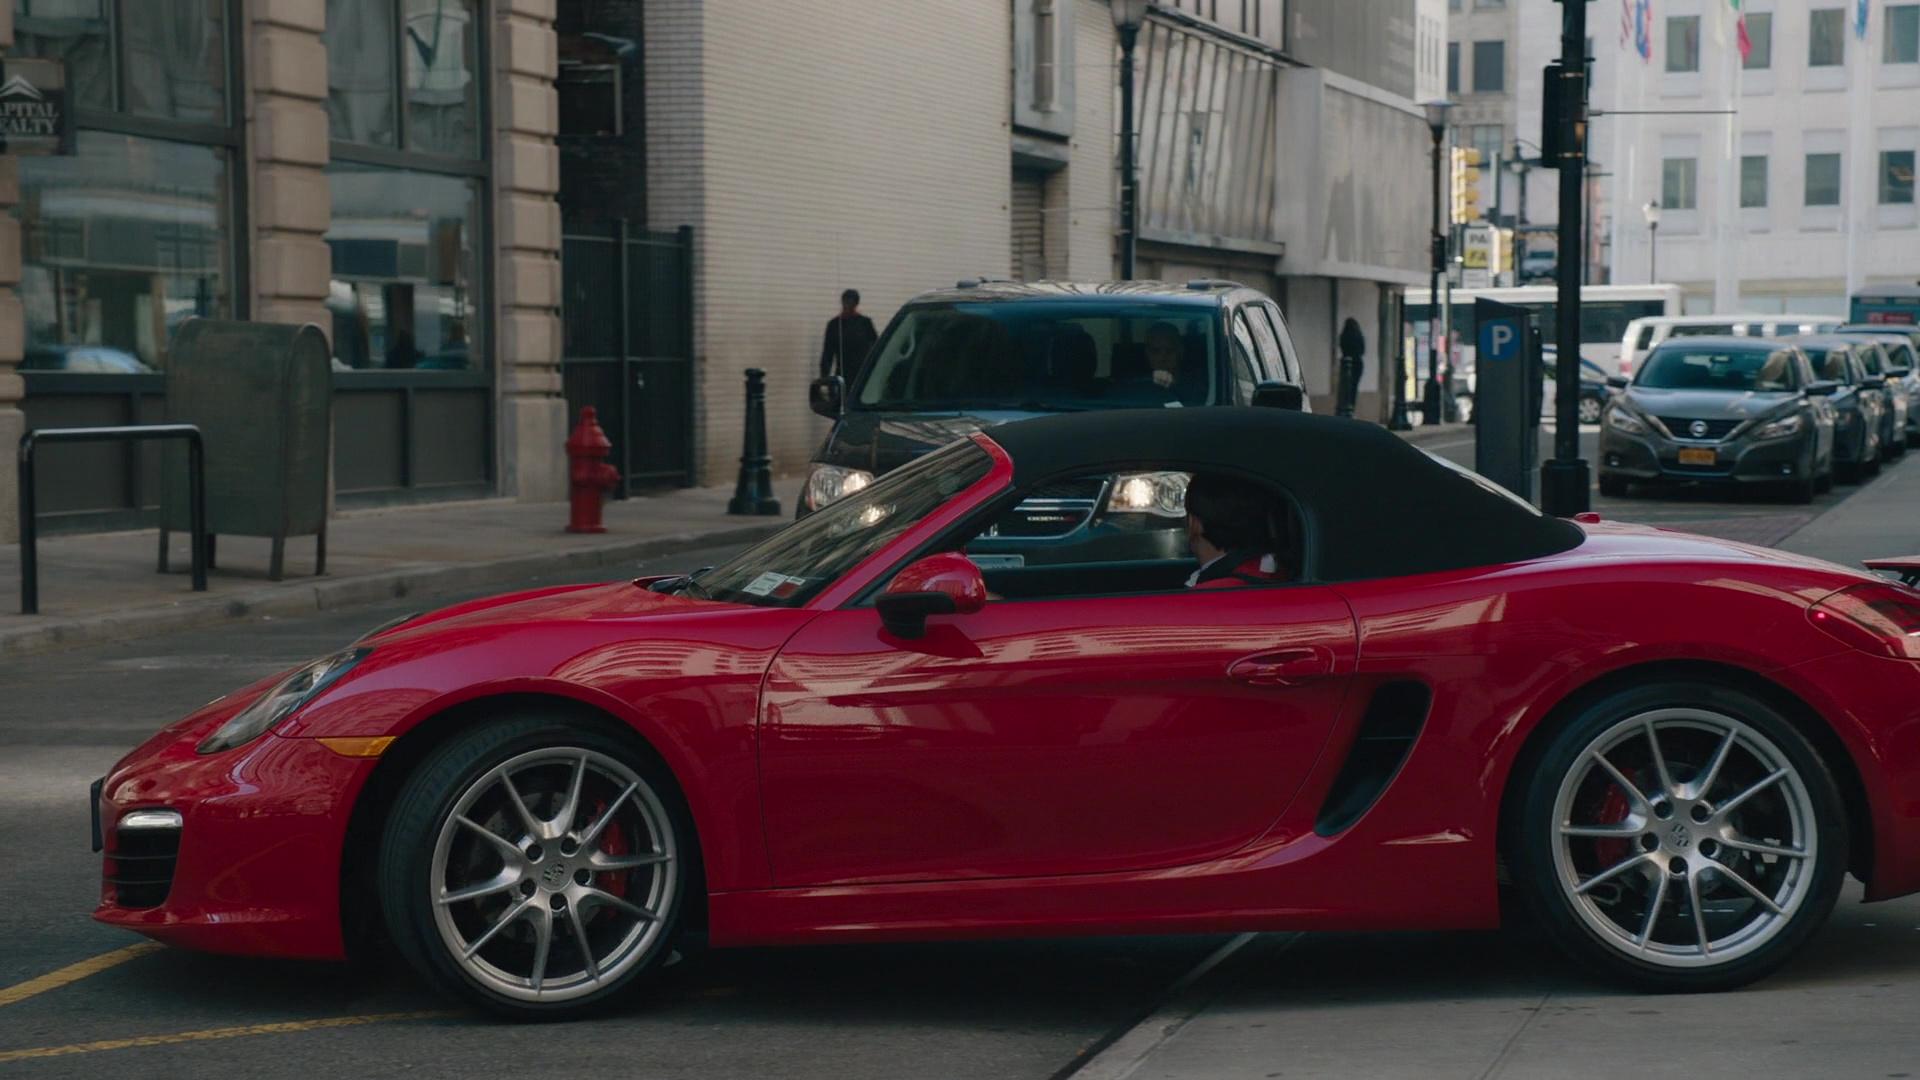 Exotic Car Brands >> Red Porsche 718 Boxster Car Driven by Stephen Kunken in ...